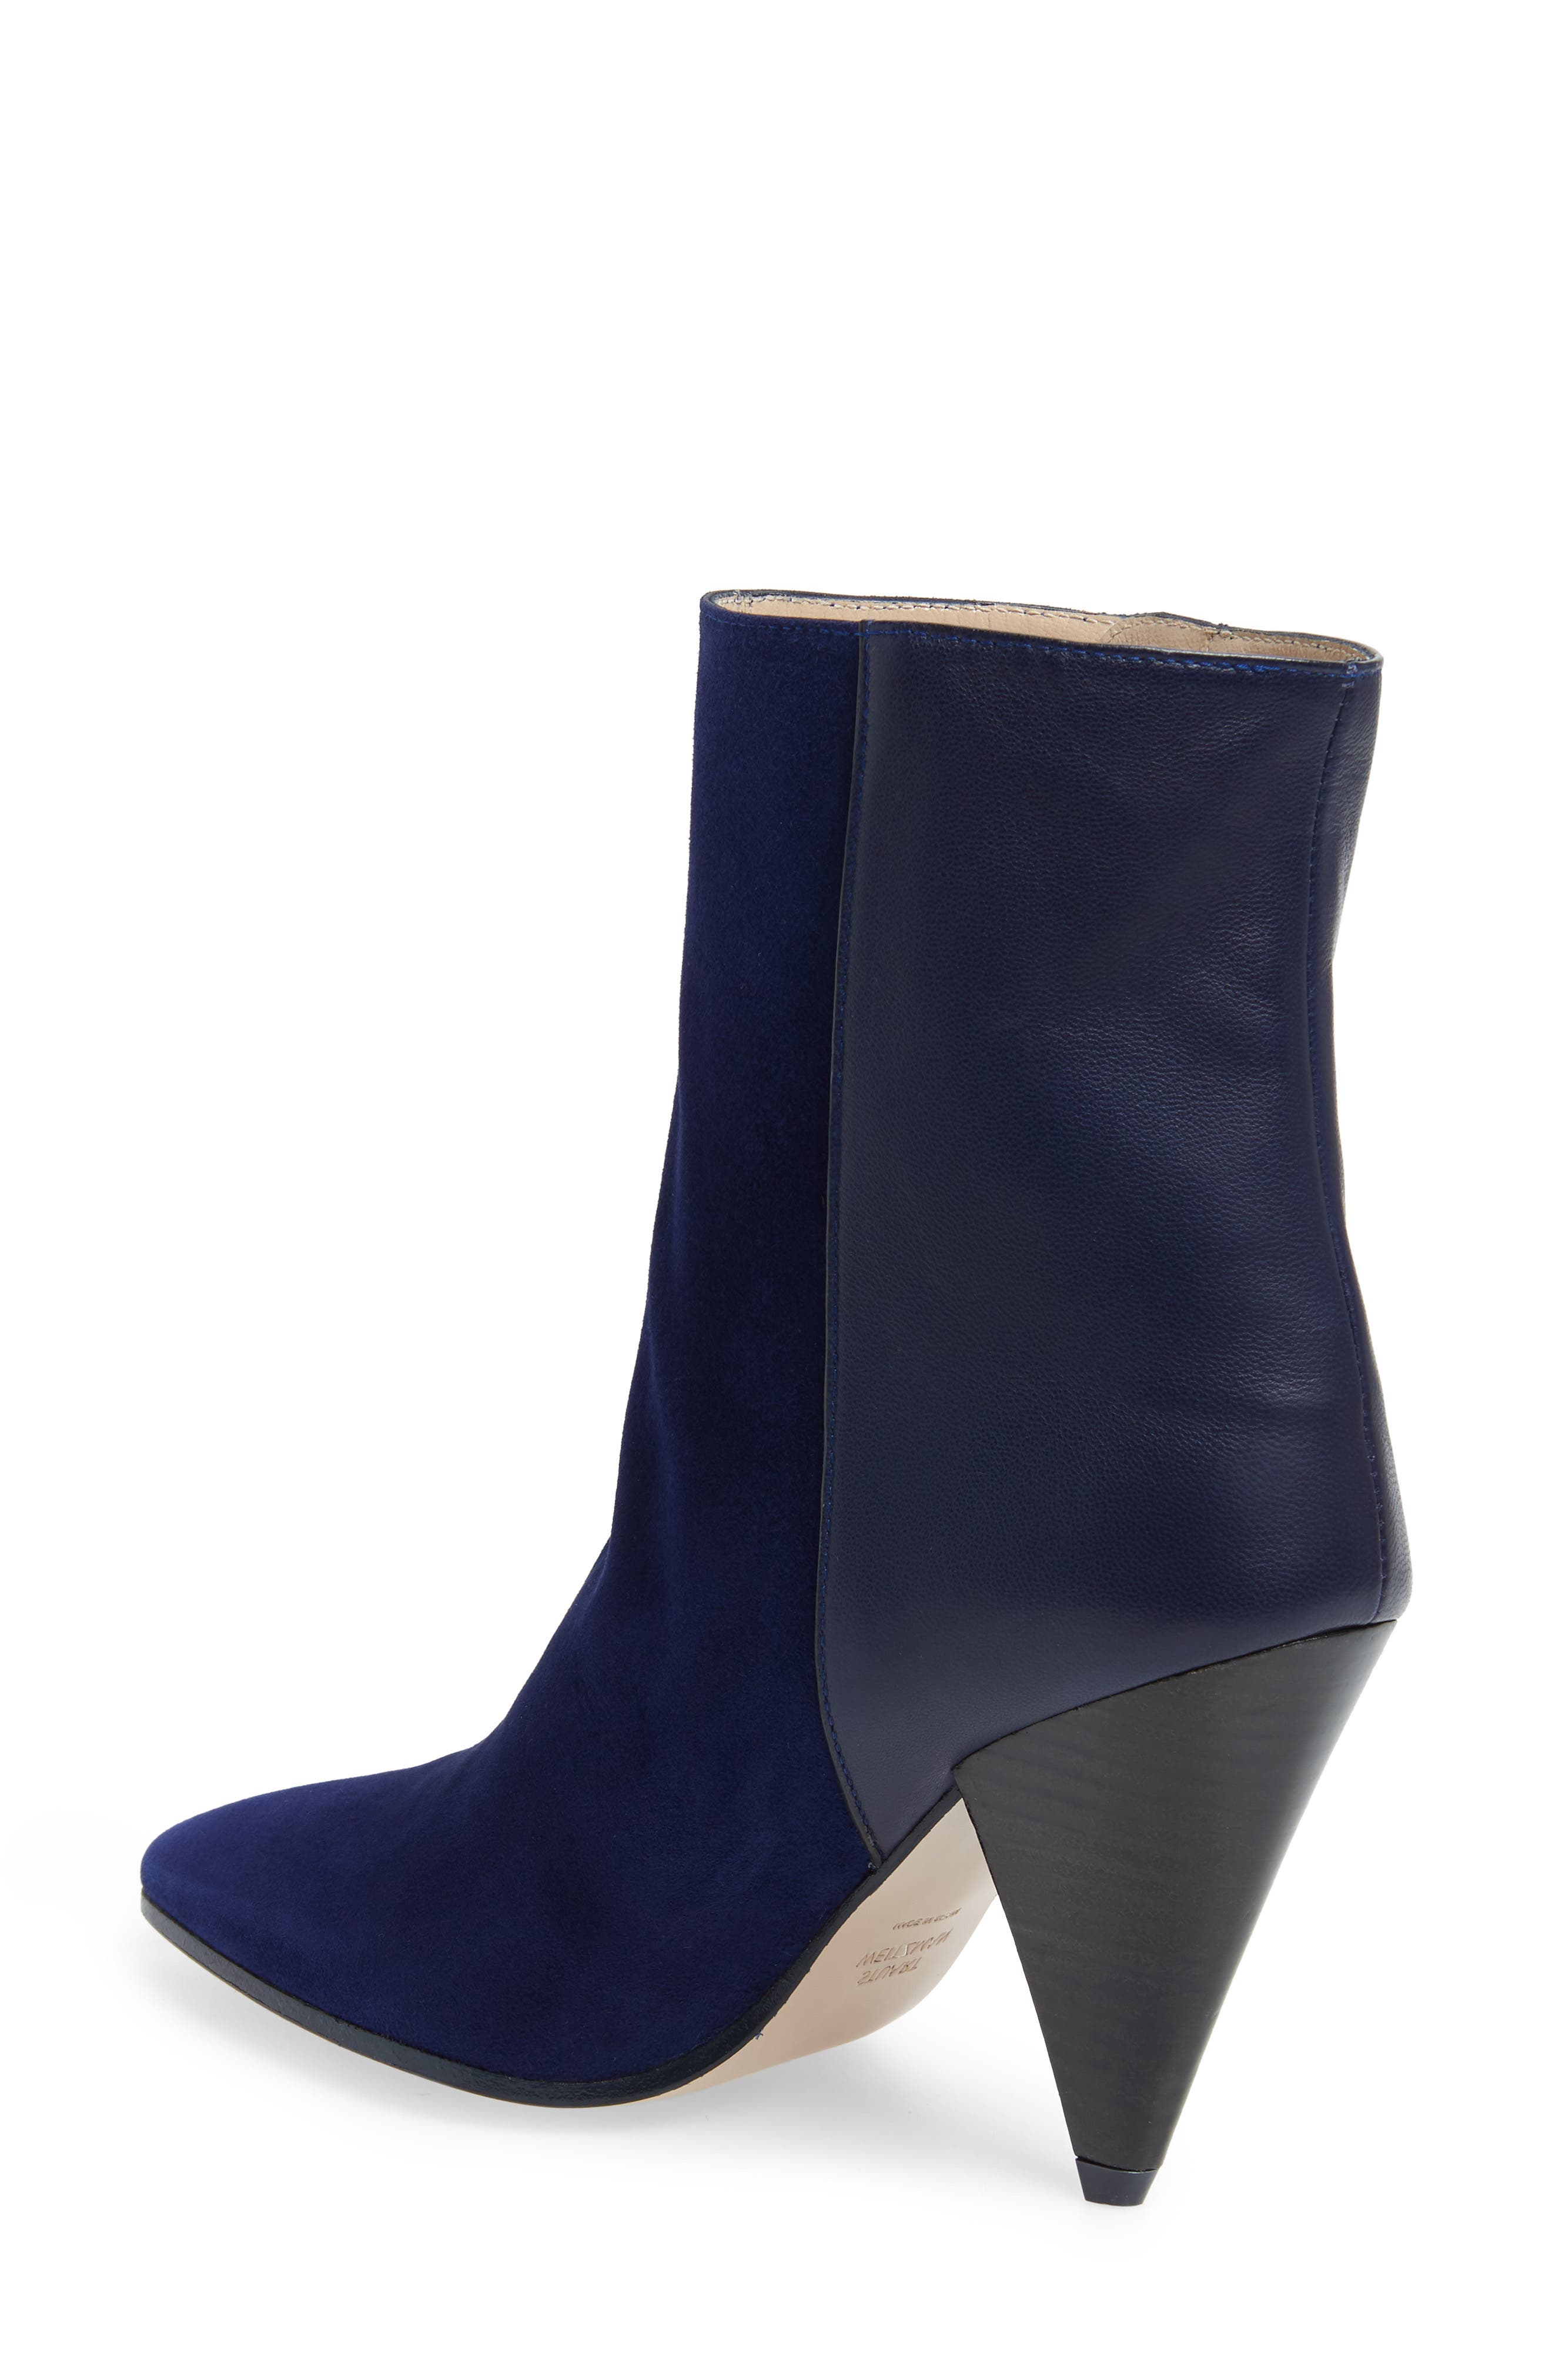 Cone Heel Bootie,                             Alternate thumbnail 2, color,                             MIDNIGHT COMBO SUEDE